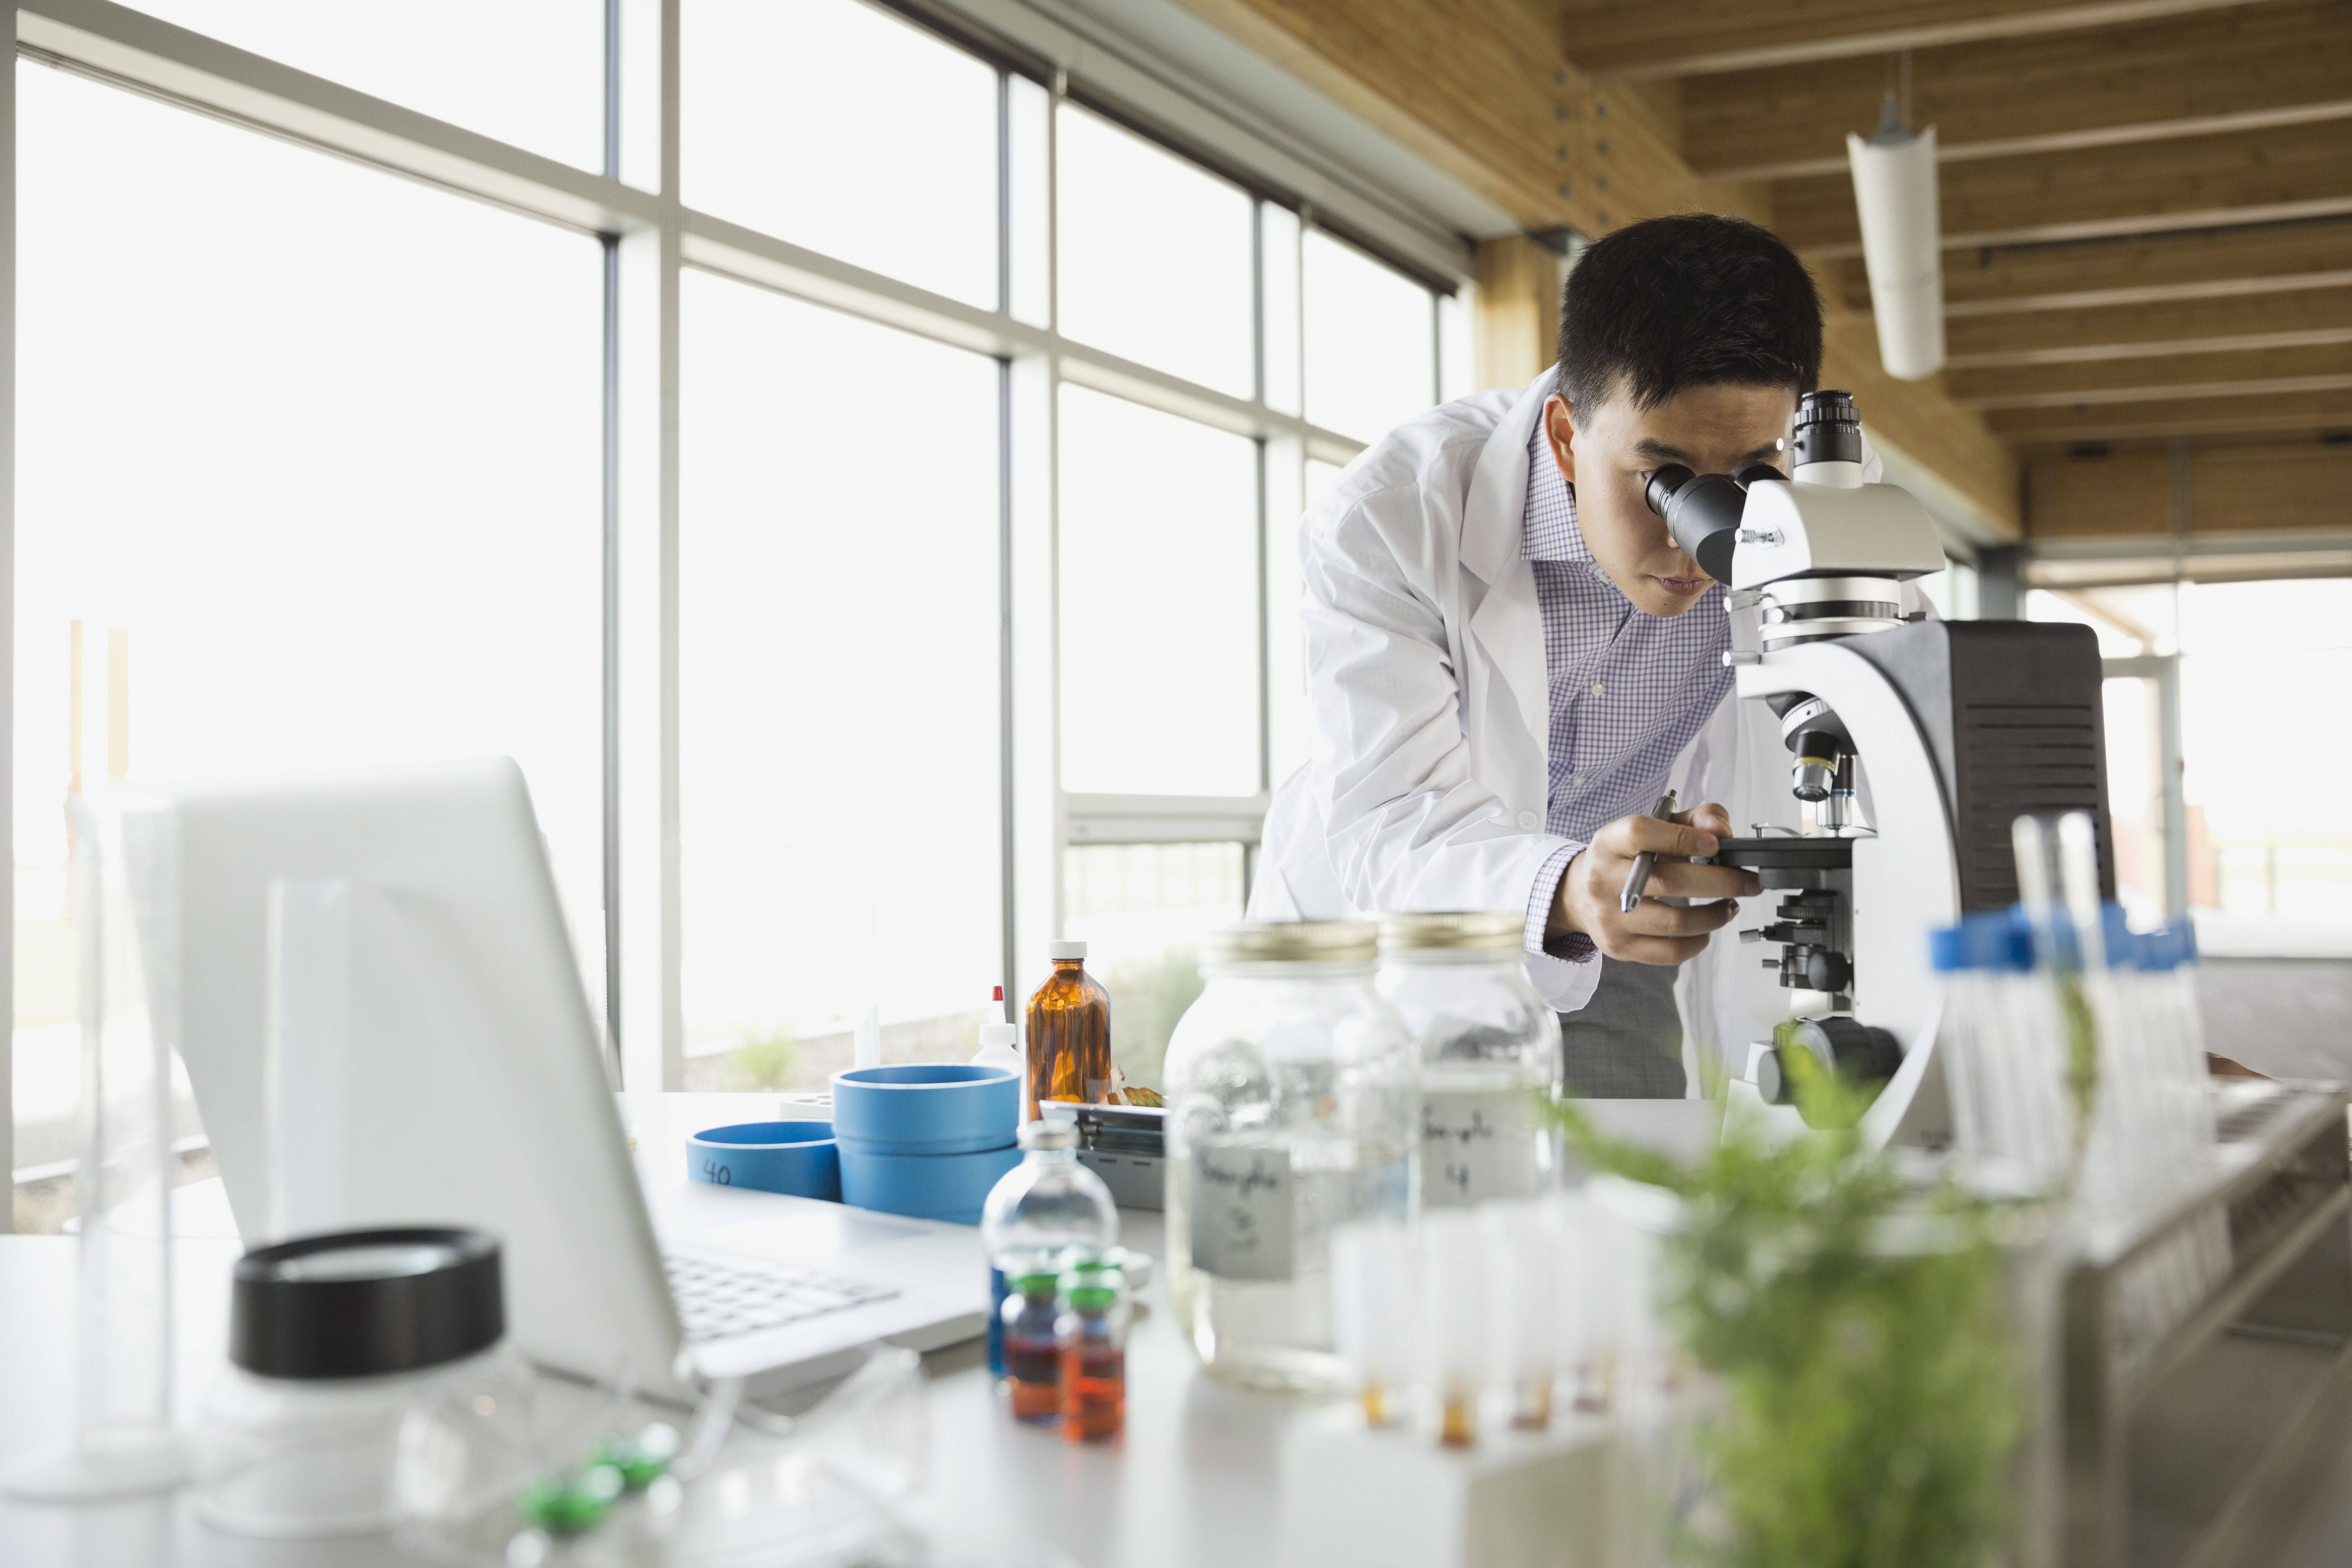 An Overview of Biotechnology and the Biotech Industry